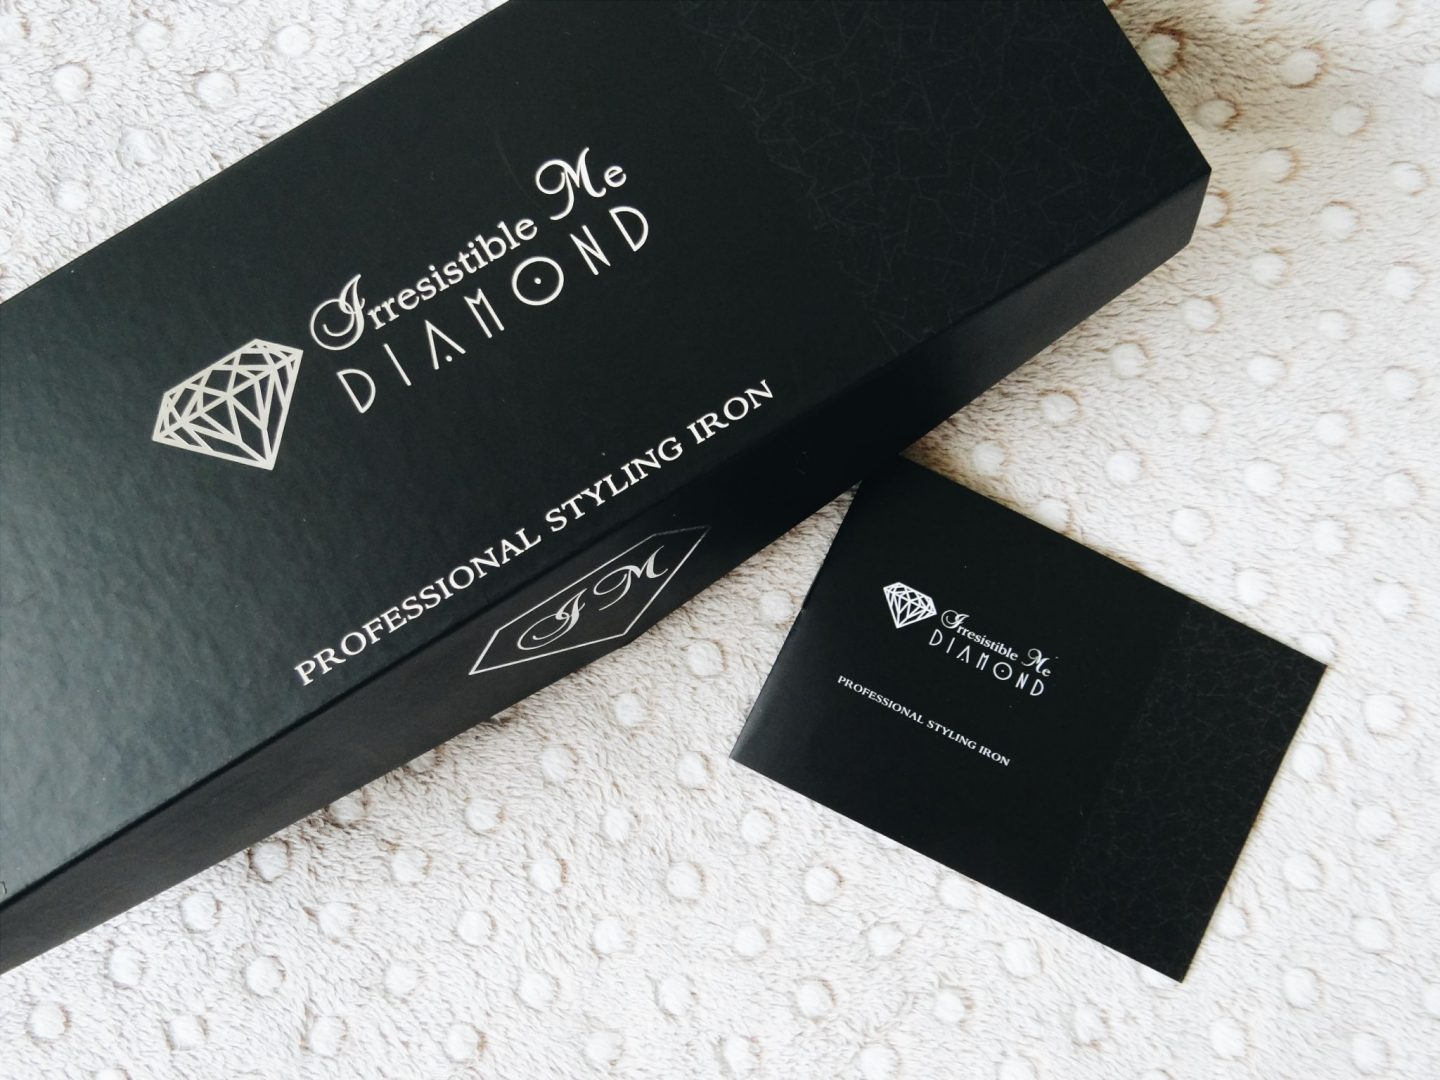 irresitible-me-brand-diamond-hair-styler-review